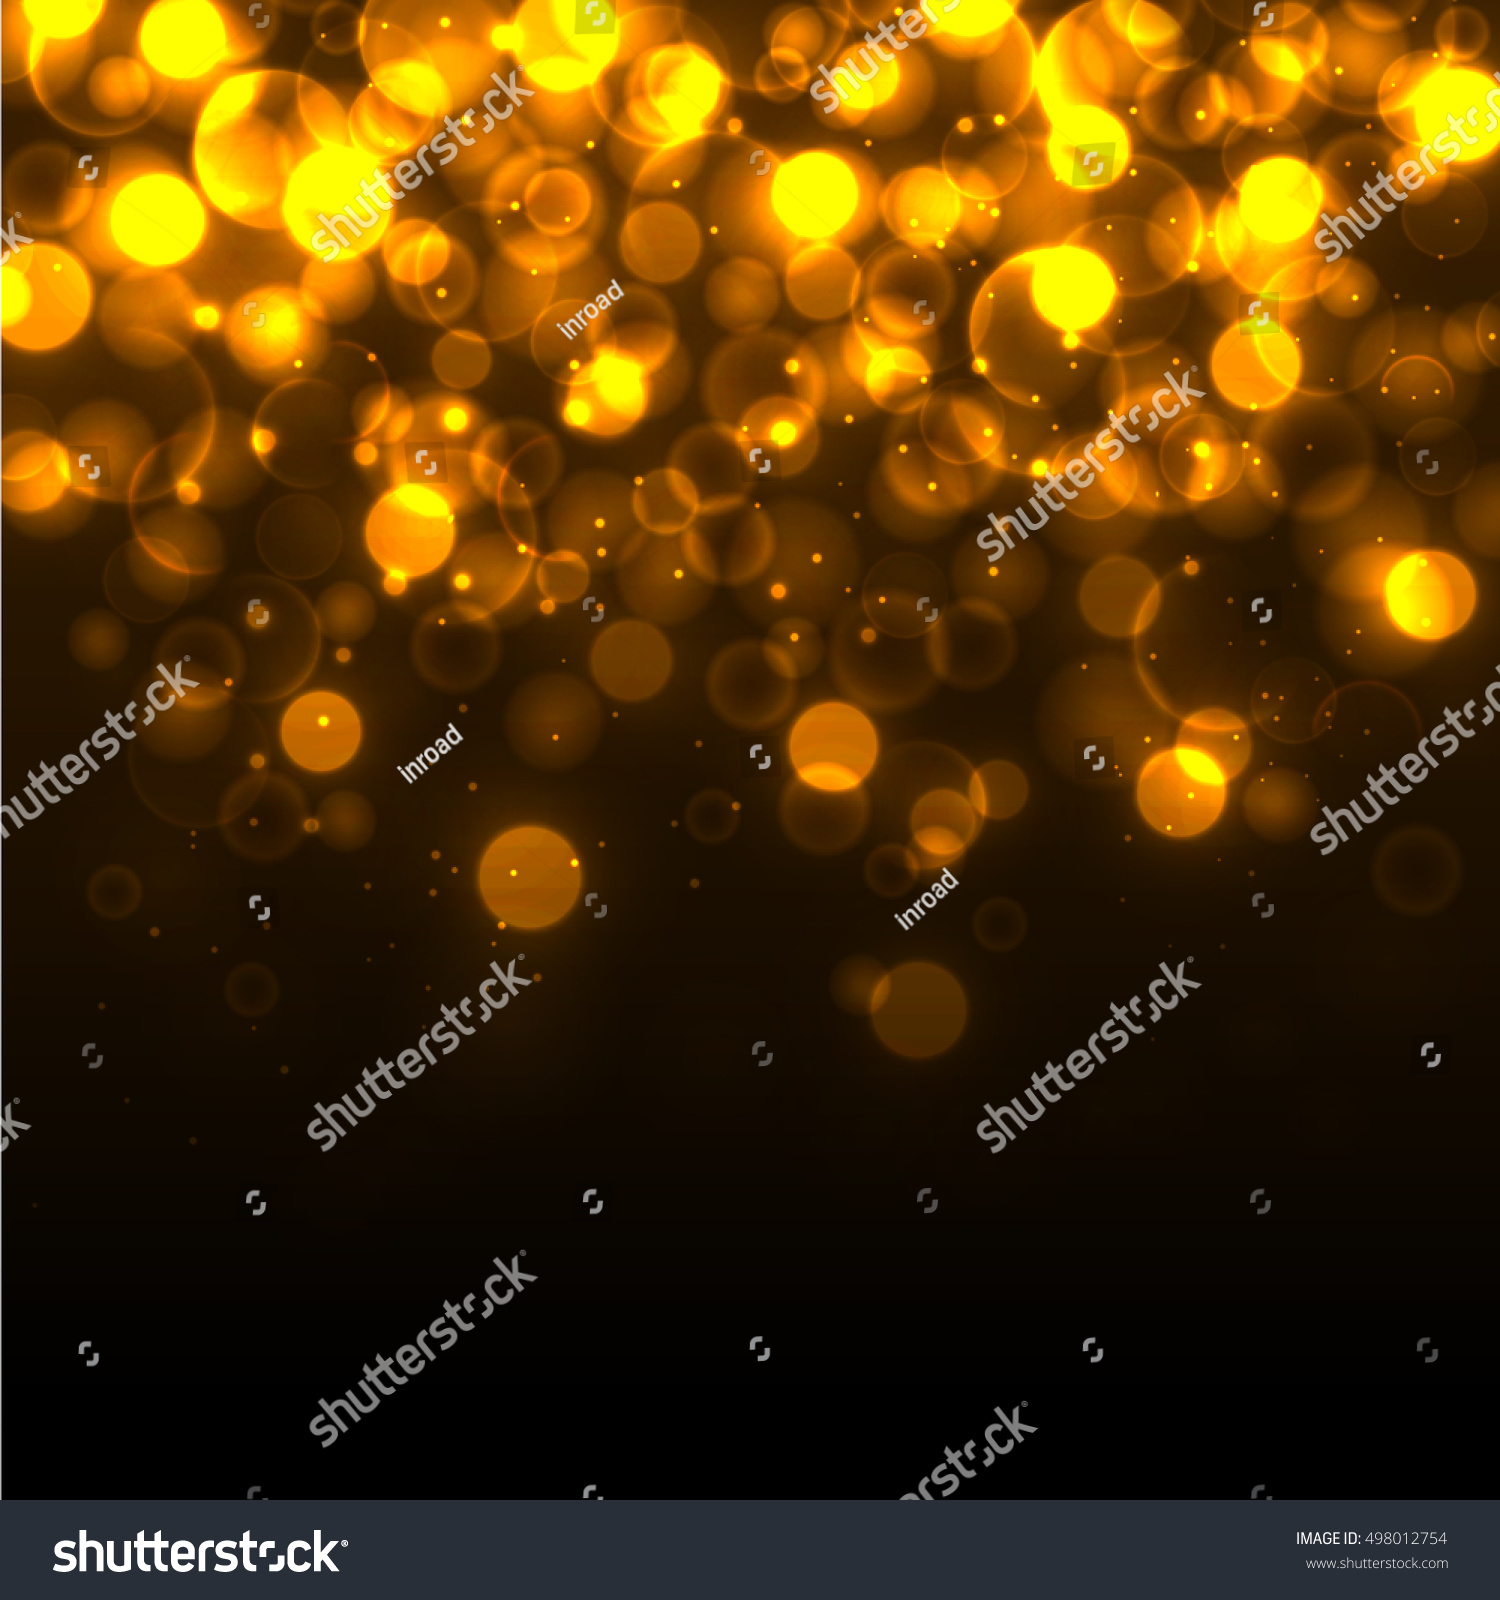 Bokeh Effect Golden Light Background Christmas Stock Vector ...